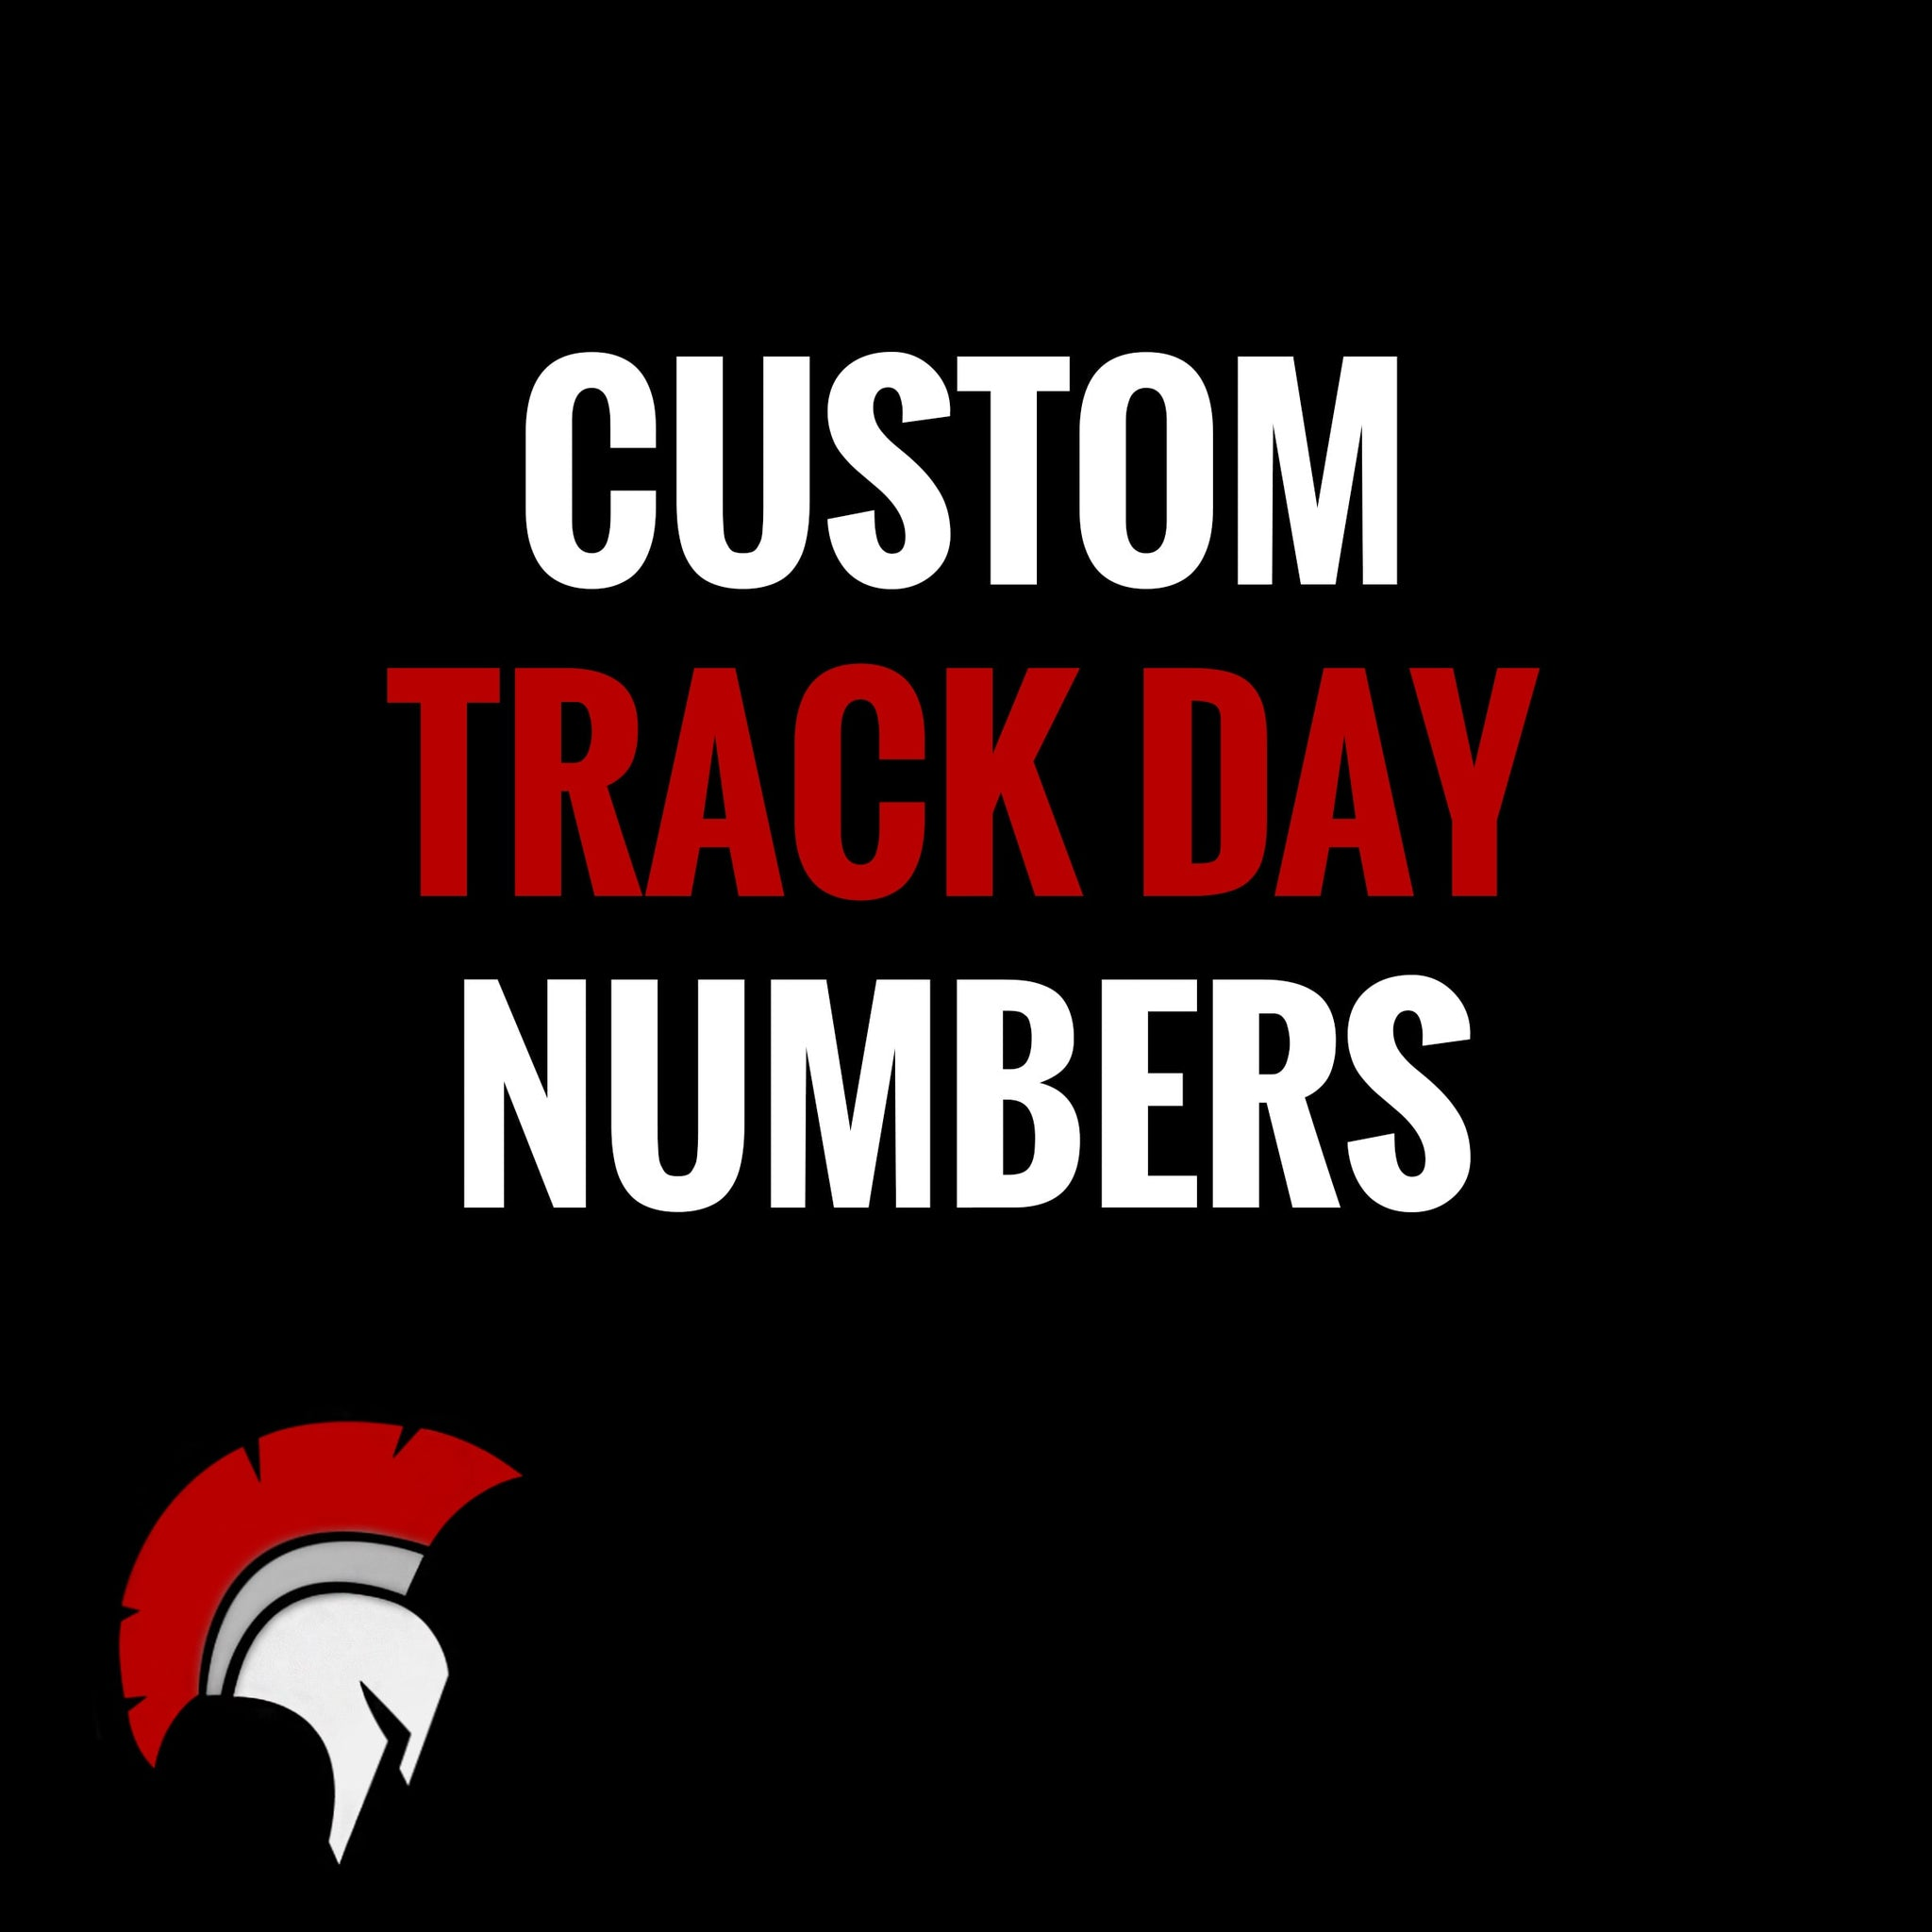 Removable vinyl number decals for track day